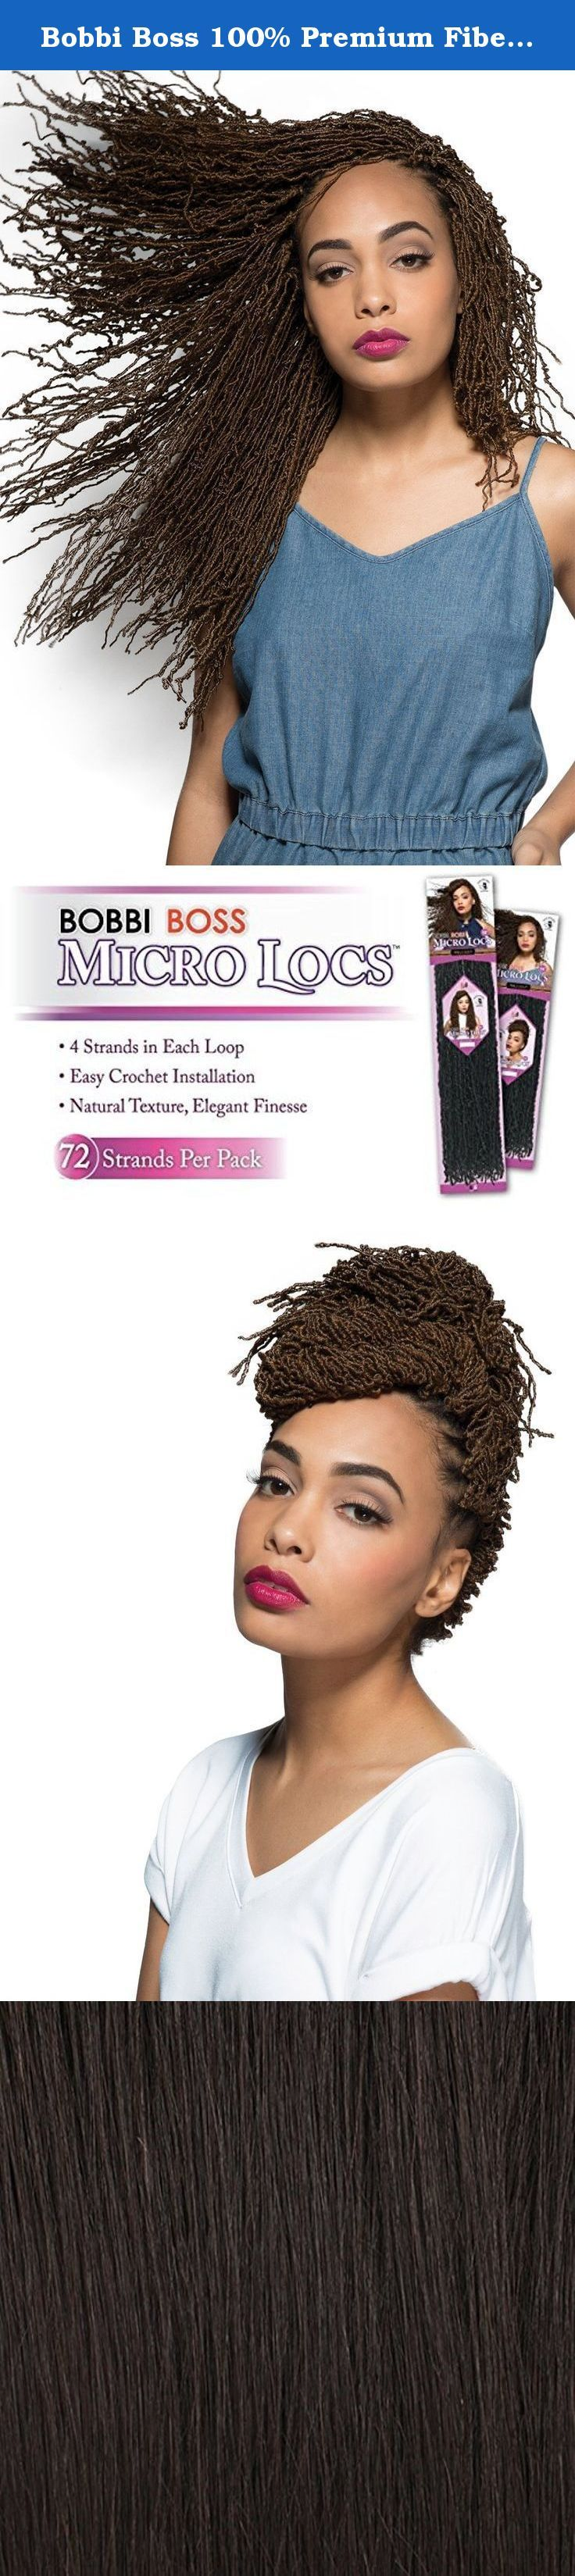 """Bobbi Boss 100% Premium Fiber Hair Micro Locs 14"""" - BMCRLC-14 (1B). Hand-Made Finish - Stunning, uniform strands in every bundle / Crochet Interlocking - Time-saving, effortless installation / Pre-made Loop - Fits perfectly into a crochet hook for ultra-easy interlacing / Natural Texture - Remarkably natural look & soft-to-touch handling / Excellent Hot Water Setting - Create beautiful, defined curls in seconds."""